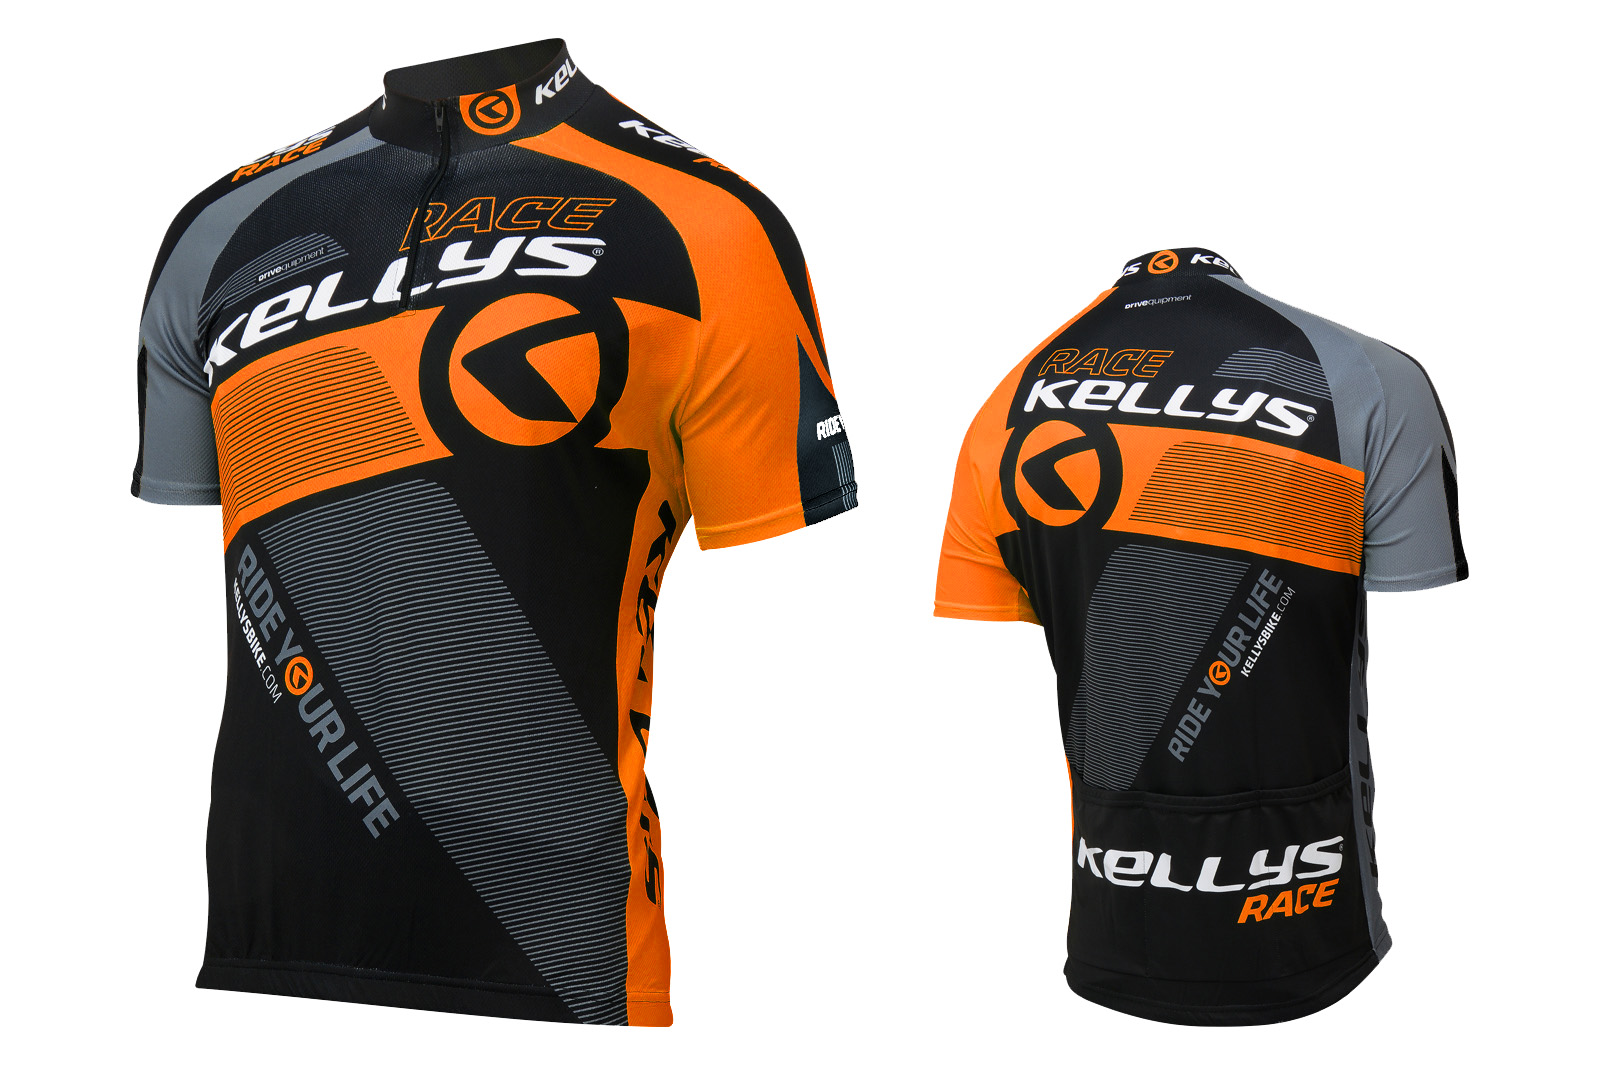 Kurzarmtrikot KELLYS PRO Race orange - S - Kurzarmtrikot KELLYS PRO Race orange - S